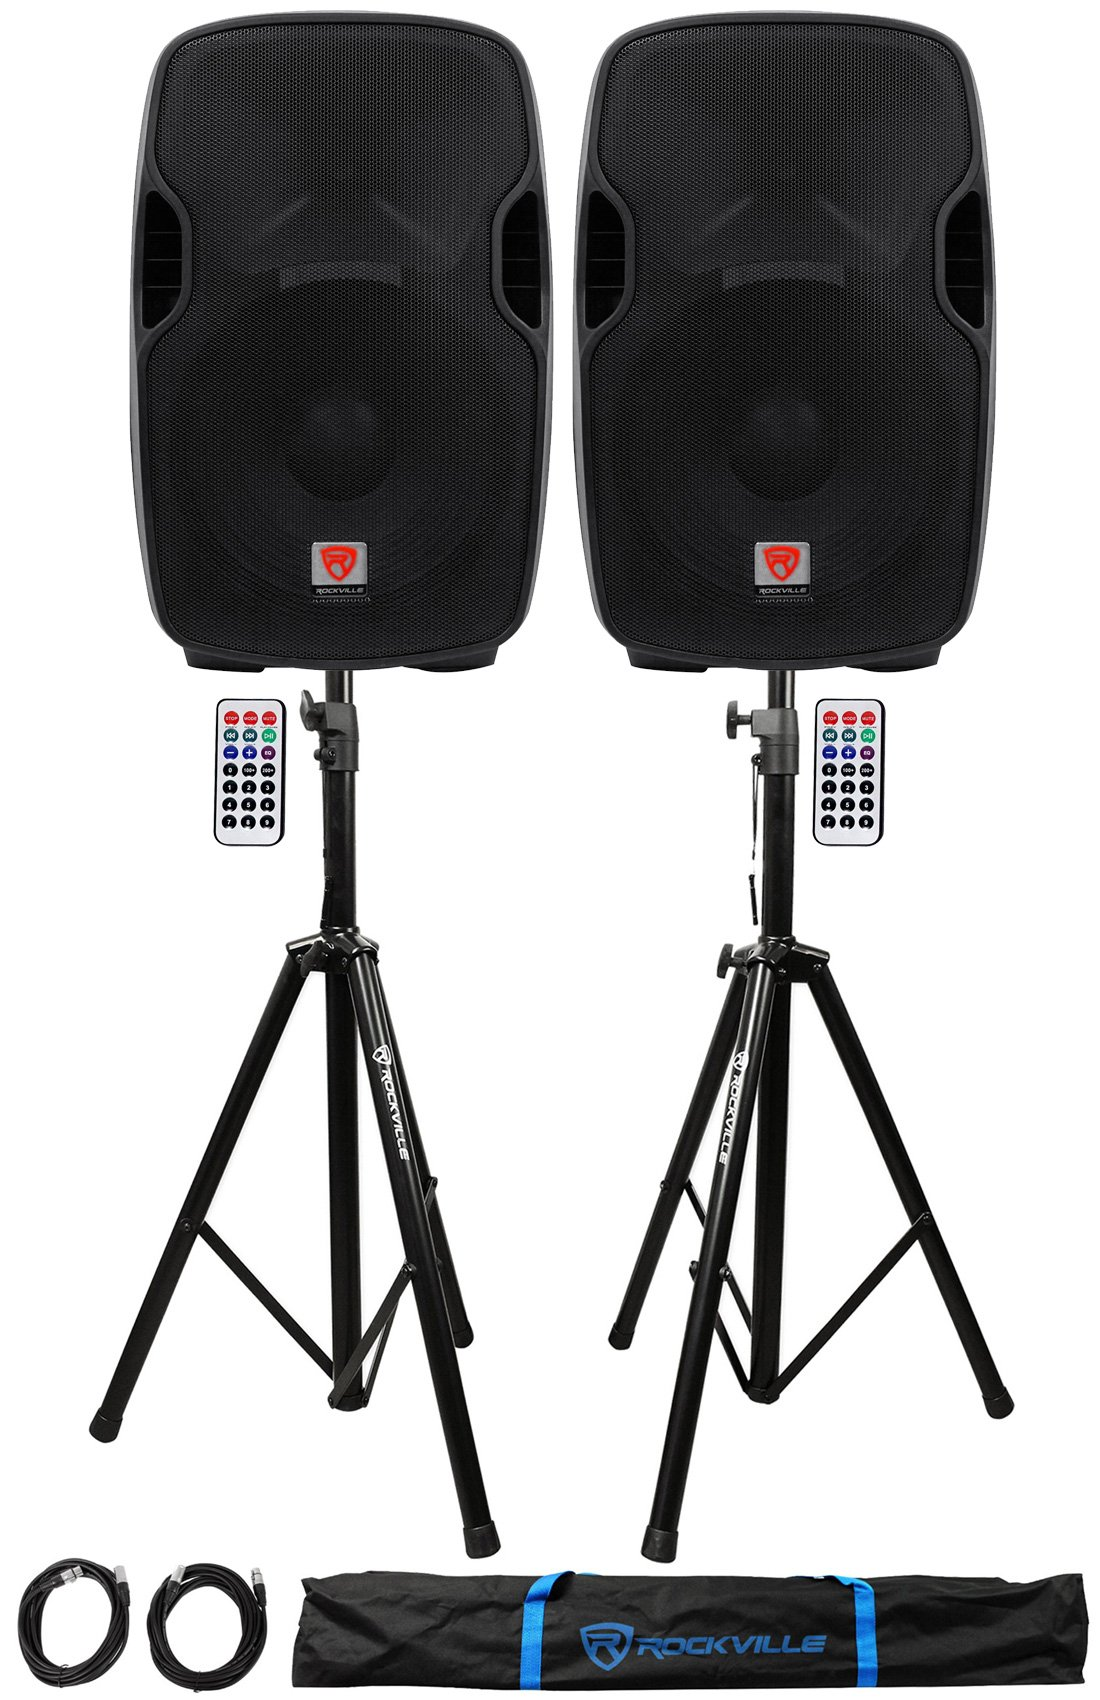 Package: (2) Rockville BPA15 15'' Active DJ/PA Speakers Totaling 1600 Watt + Pair of Rockville RVSS2-XLR Heavy Duty Adjustable Pro PA Speaker Stands + (2) 20' XLR Cables + Carrying Case